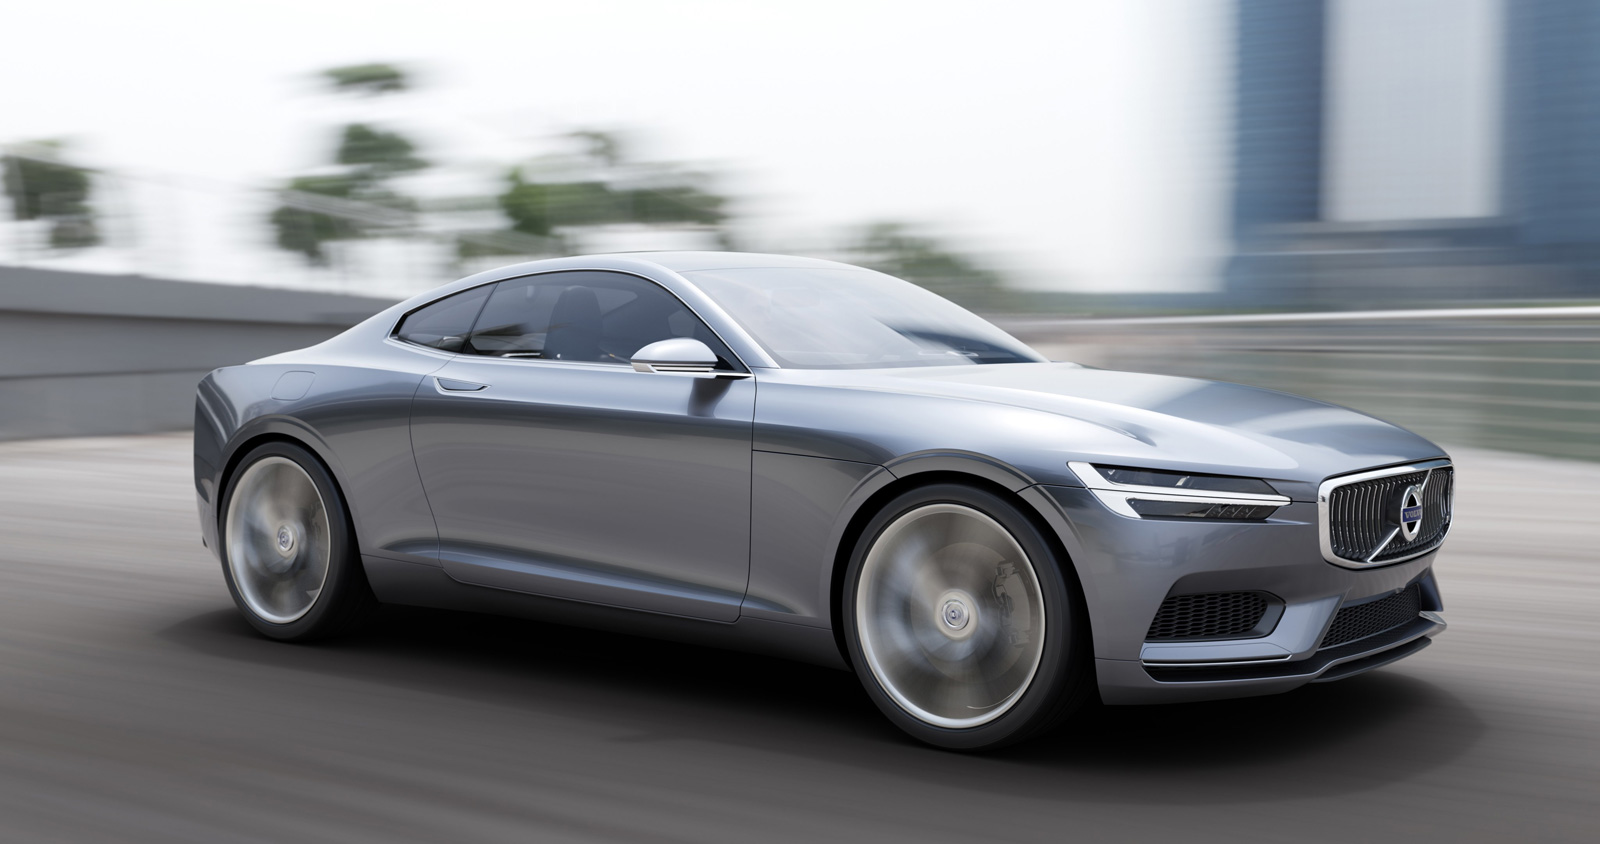 75 New Volvo Coupe 2020 Rumors for Volvo Coupe 2020